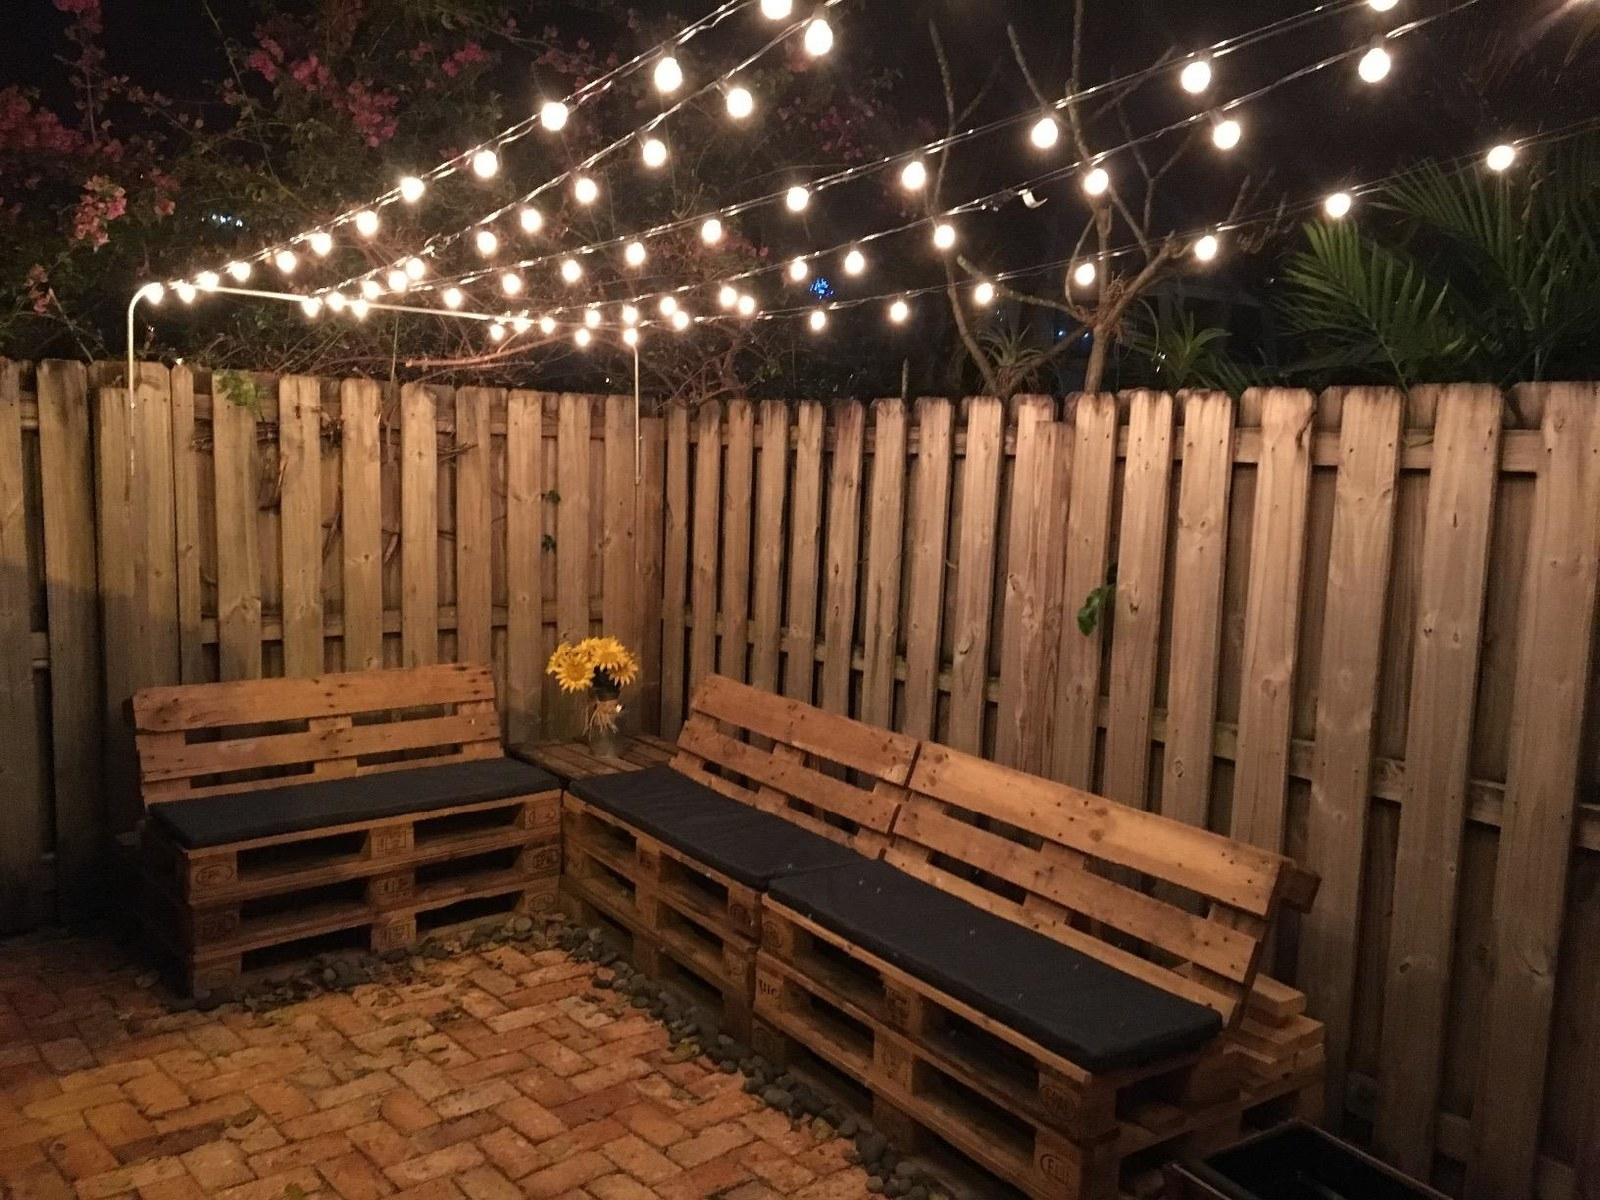 25 Little Under-$50 Upgrades To Make Your Backyard So Much Better